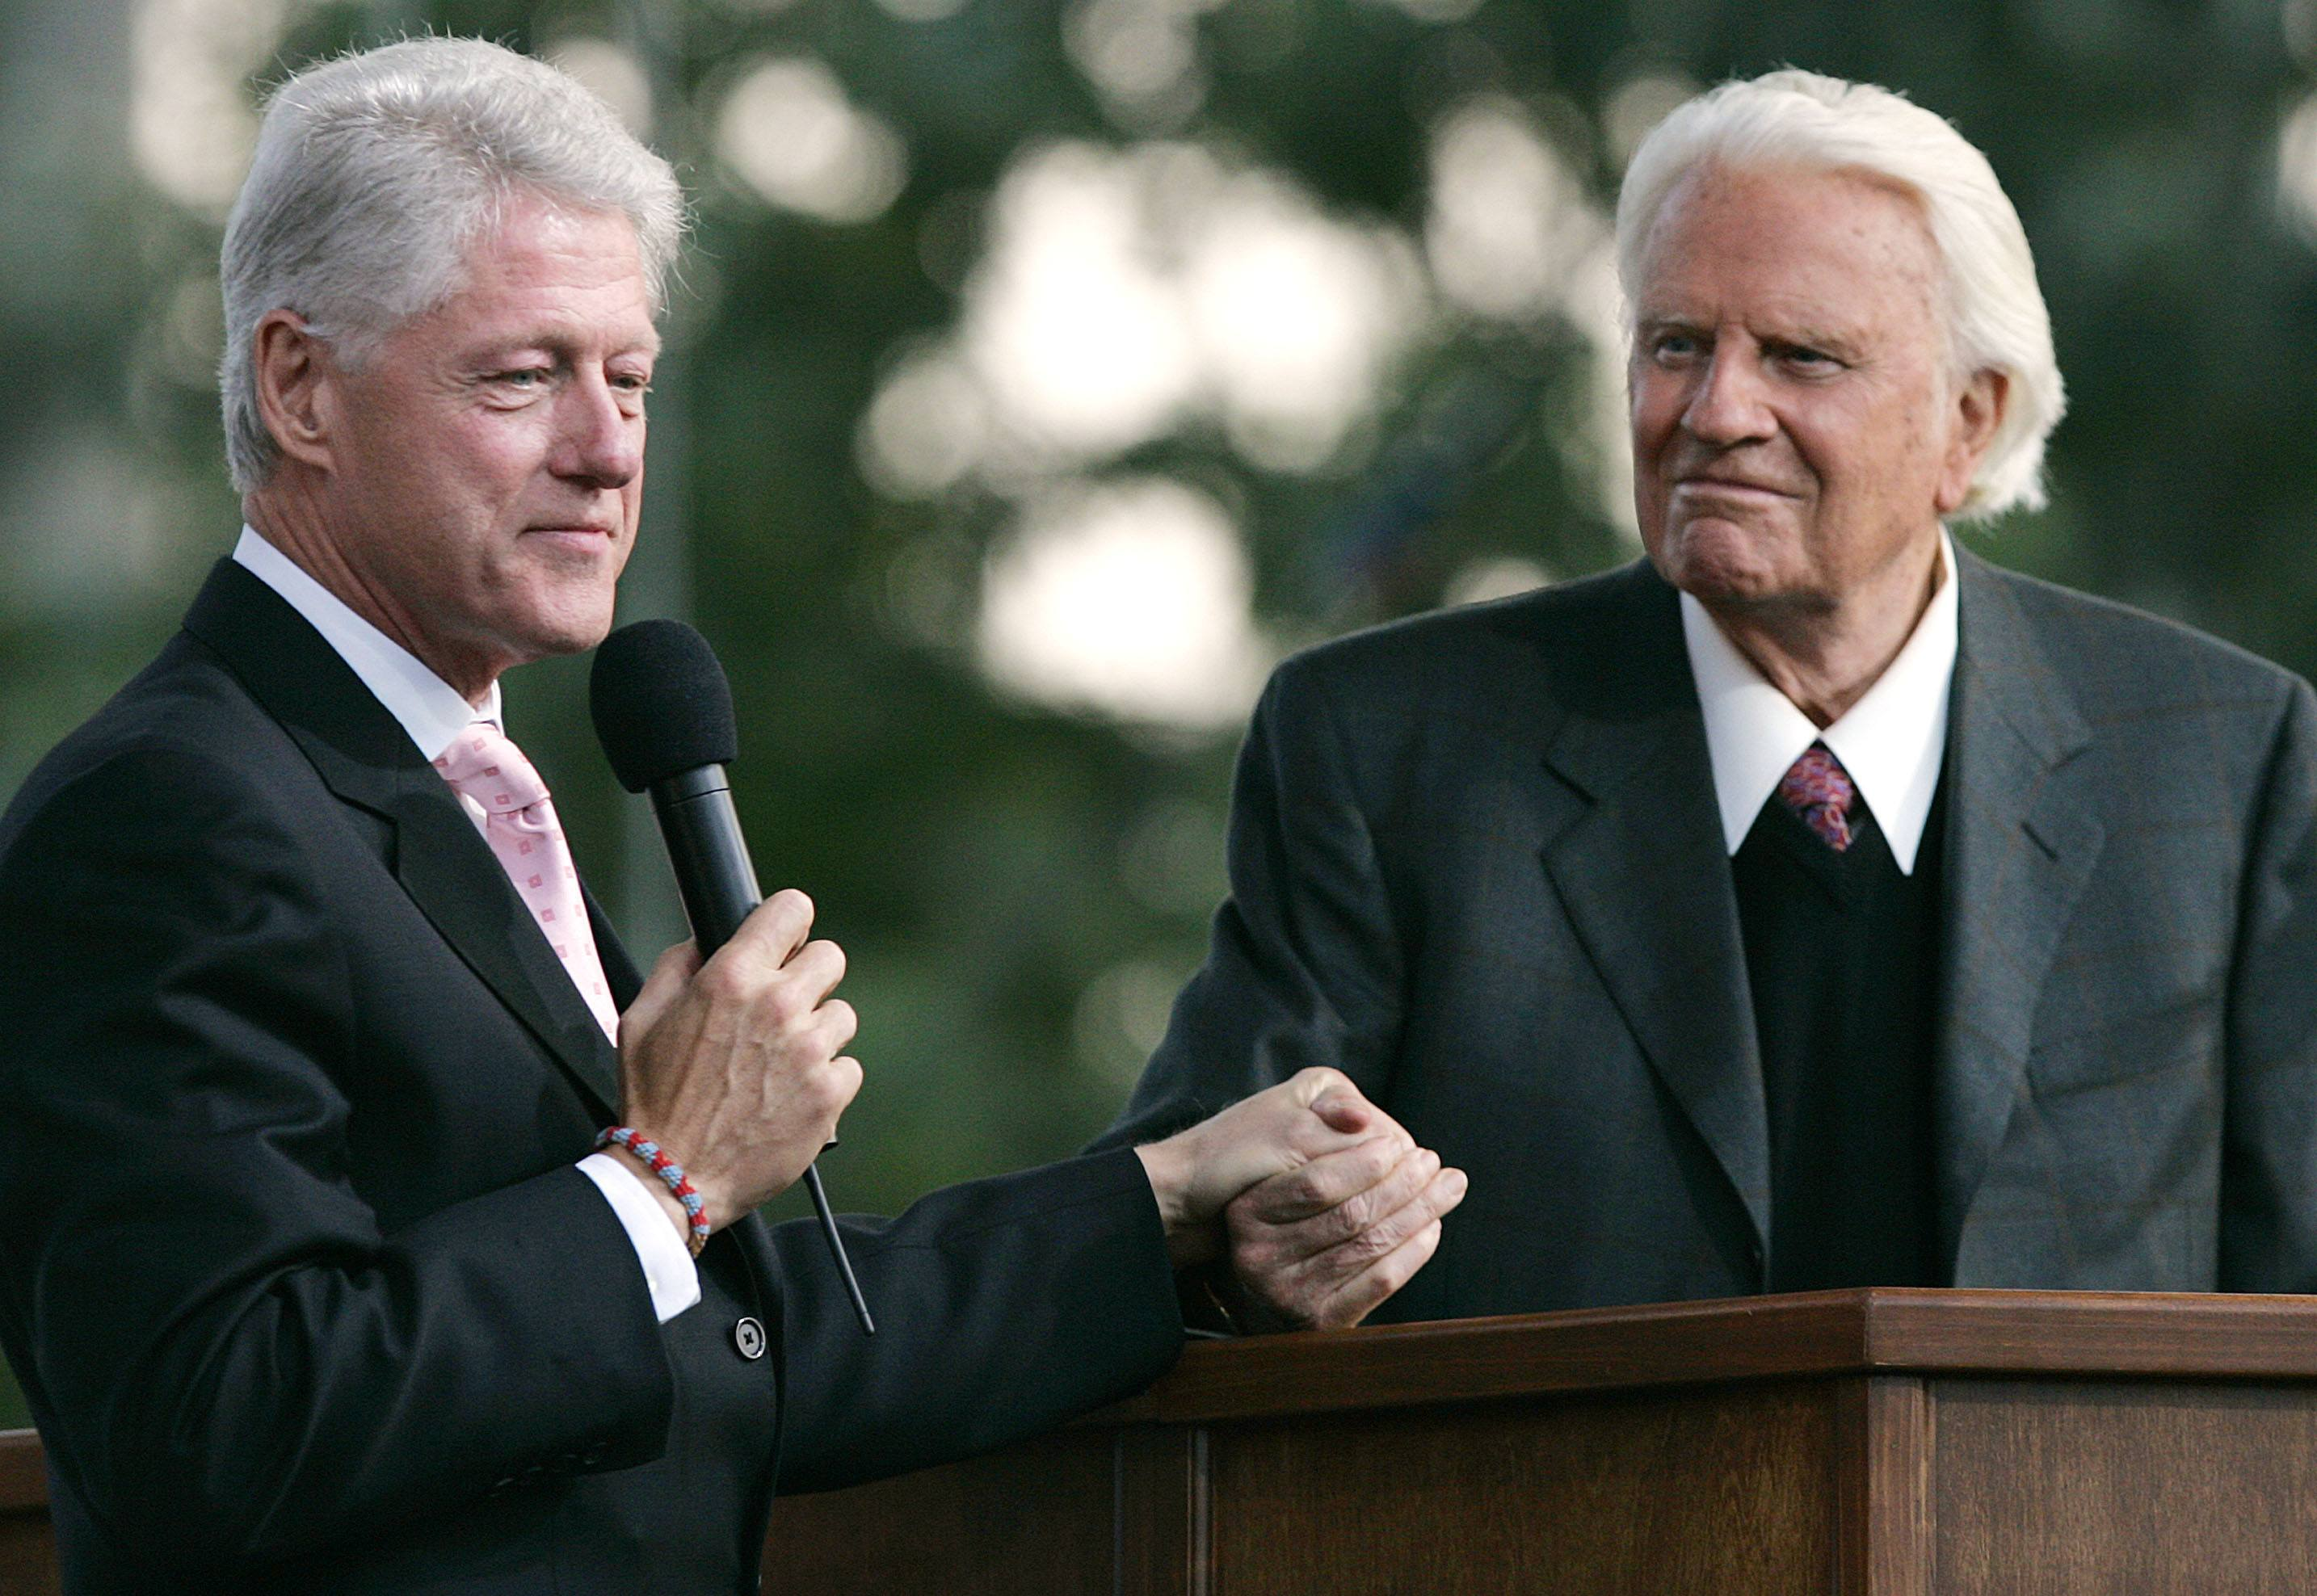 Billy Graham and Bill Clinton